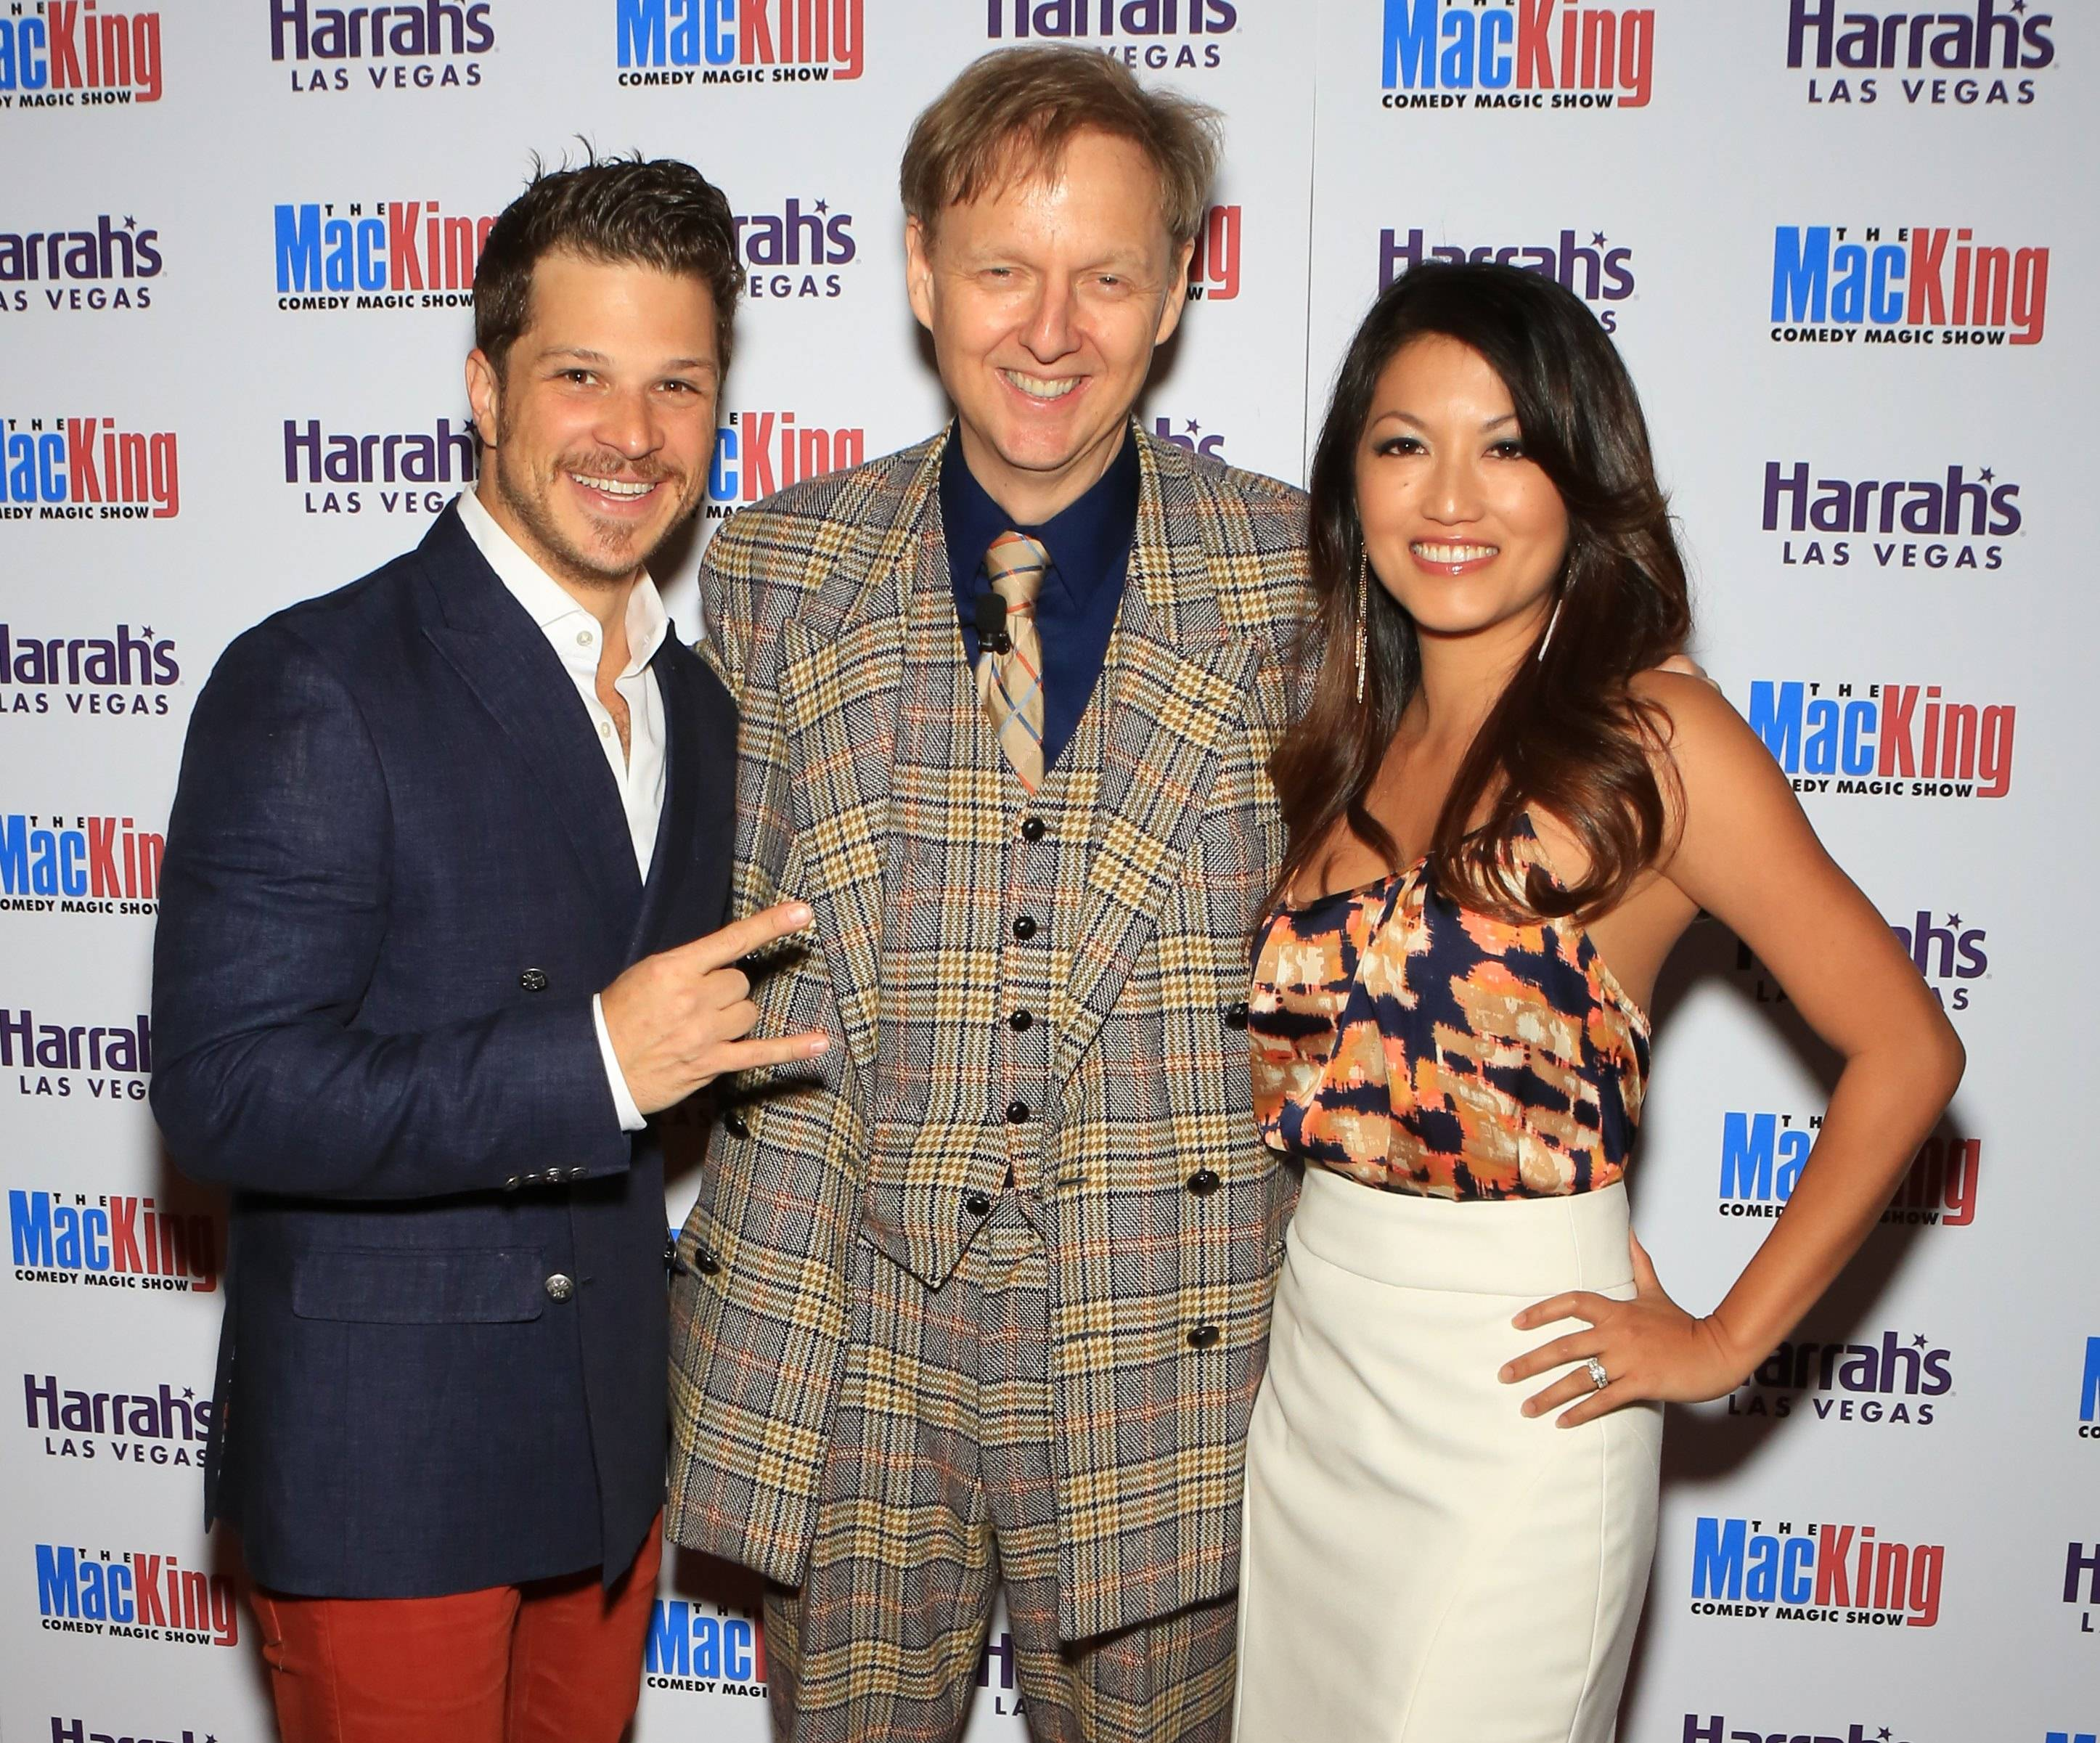 Mark Shunock, Rock of Ages and wife Cheryl Daro with Mac King